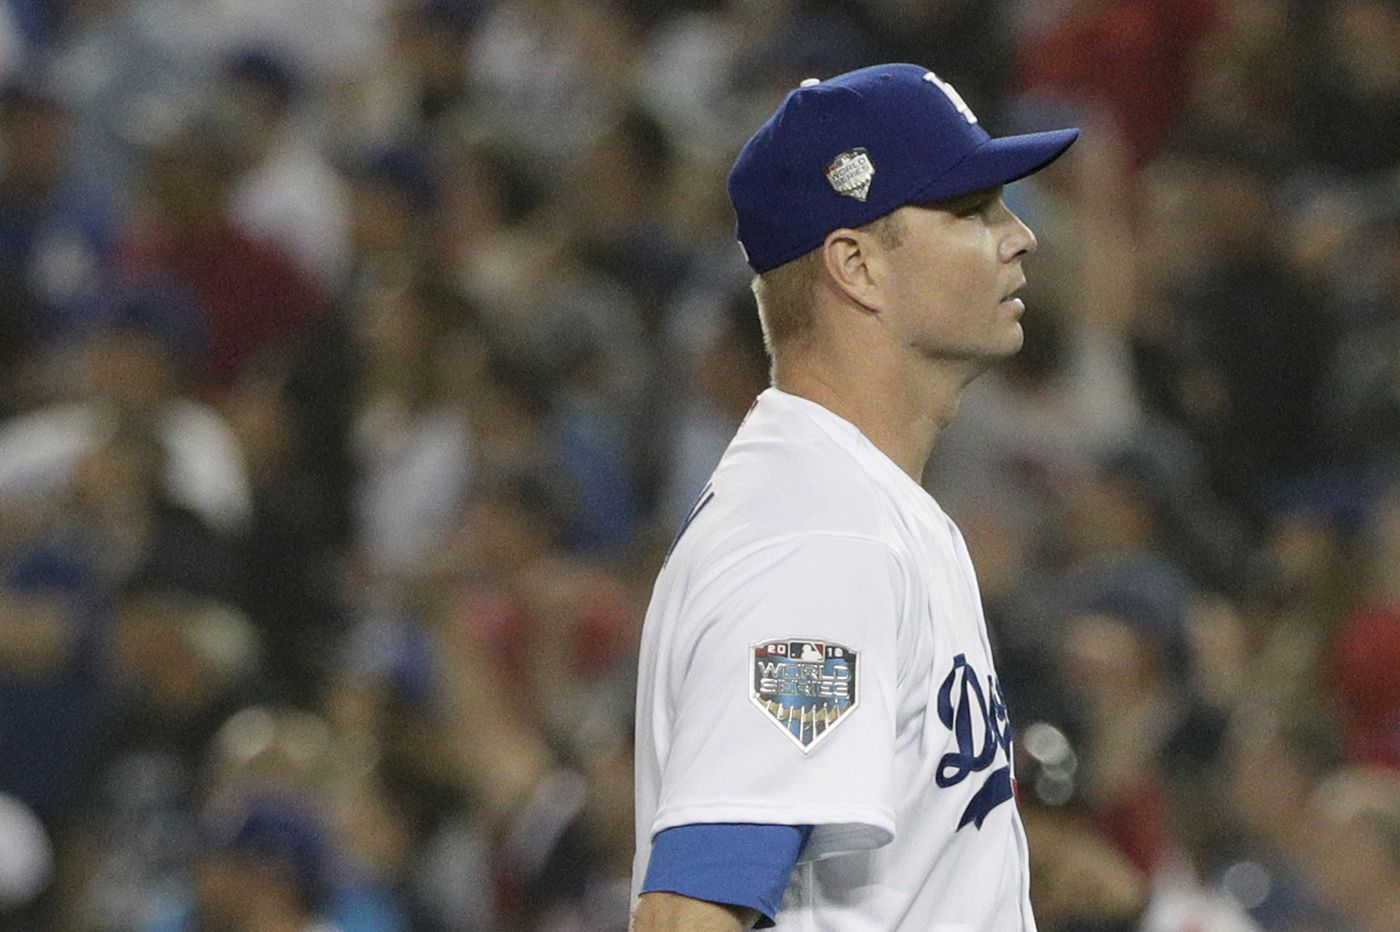 Trump rips move to ex-Phillies pitcher Ryan Madson, who happens to be a supporter